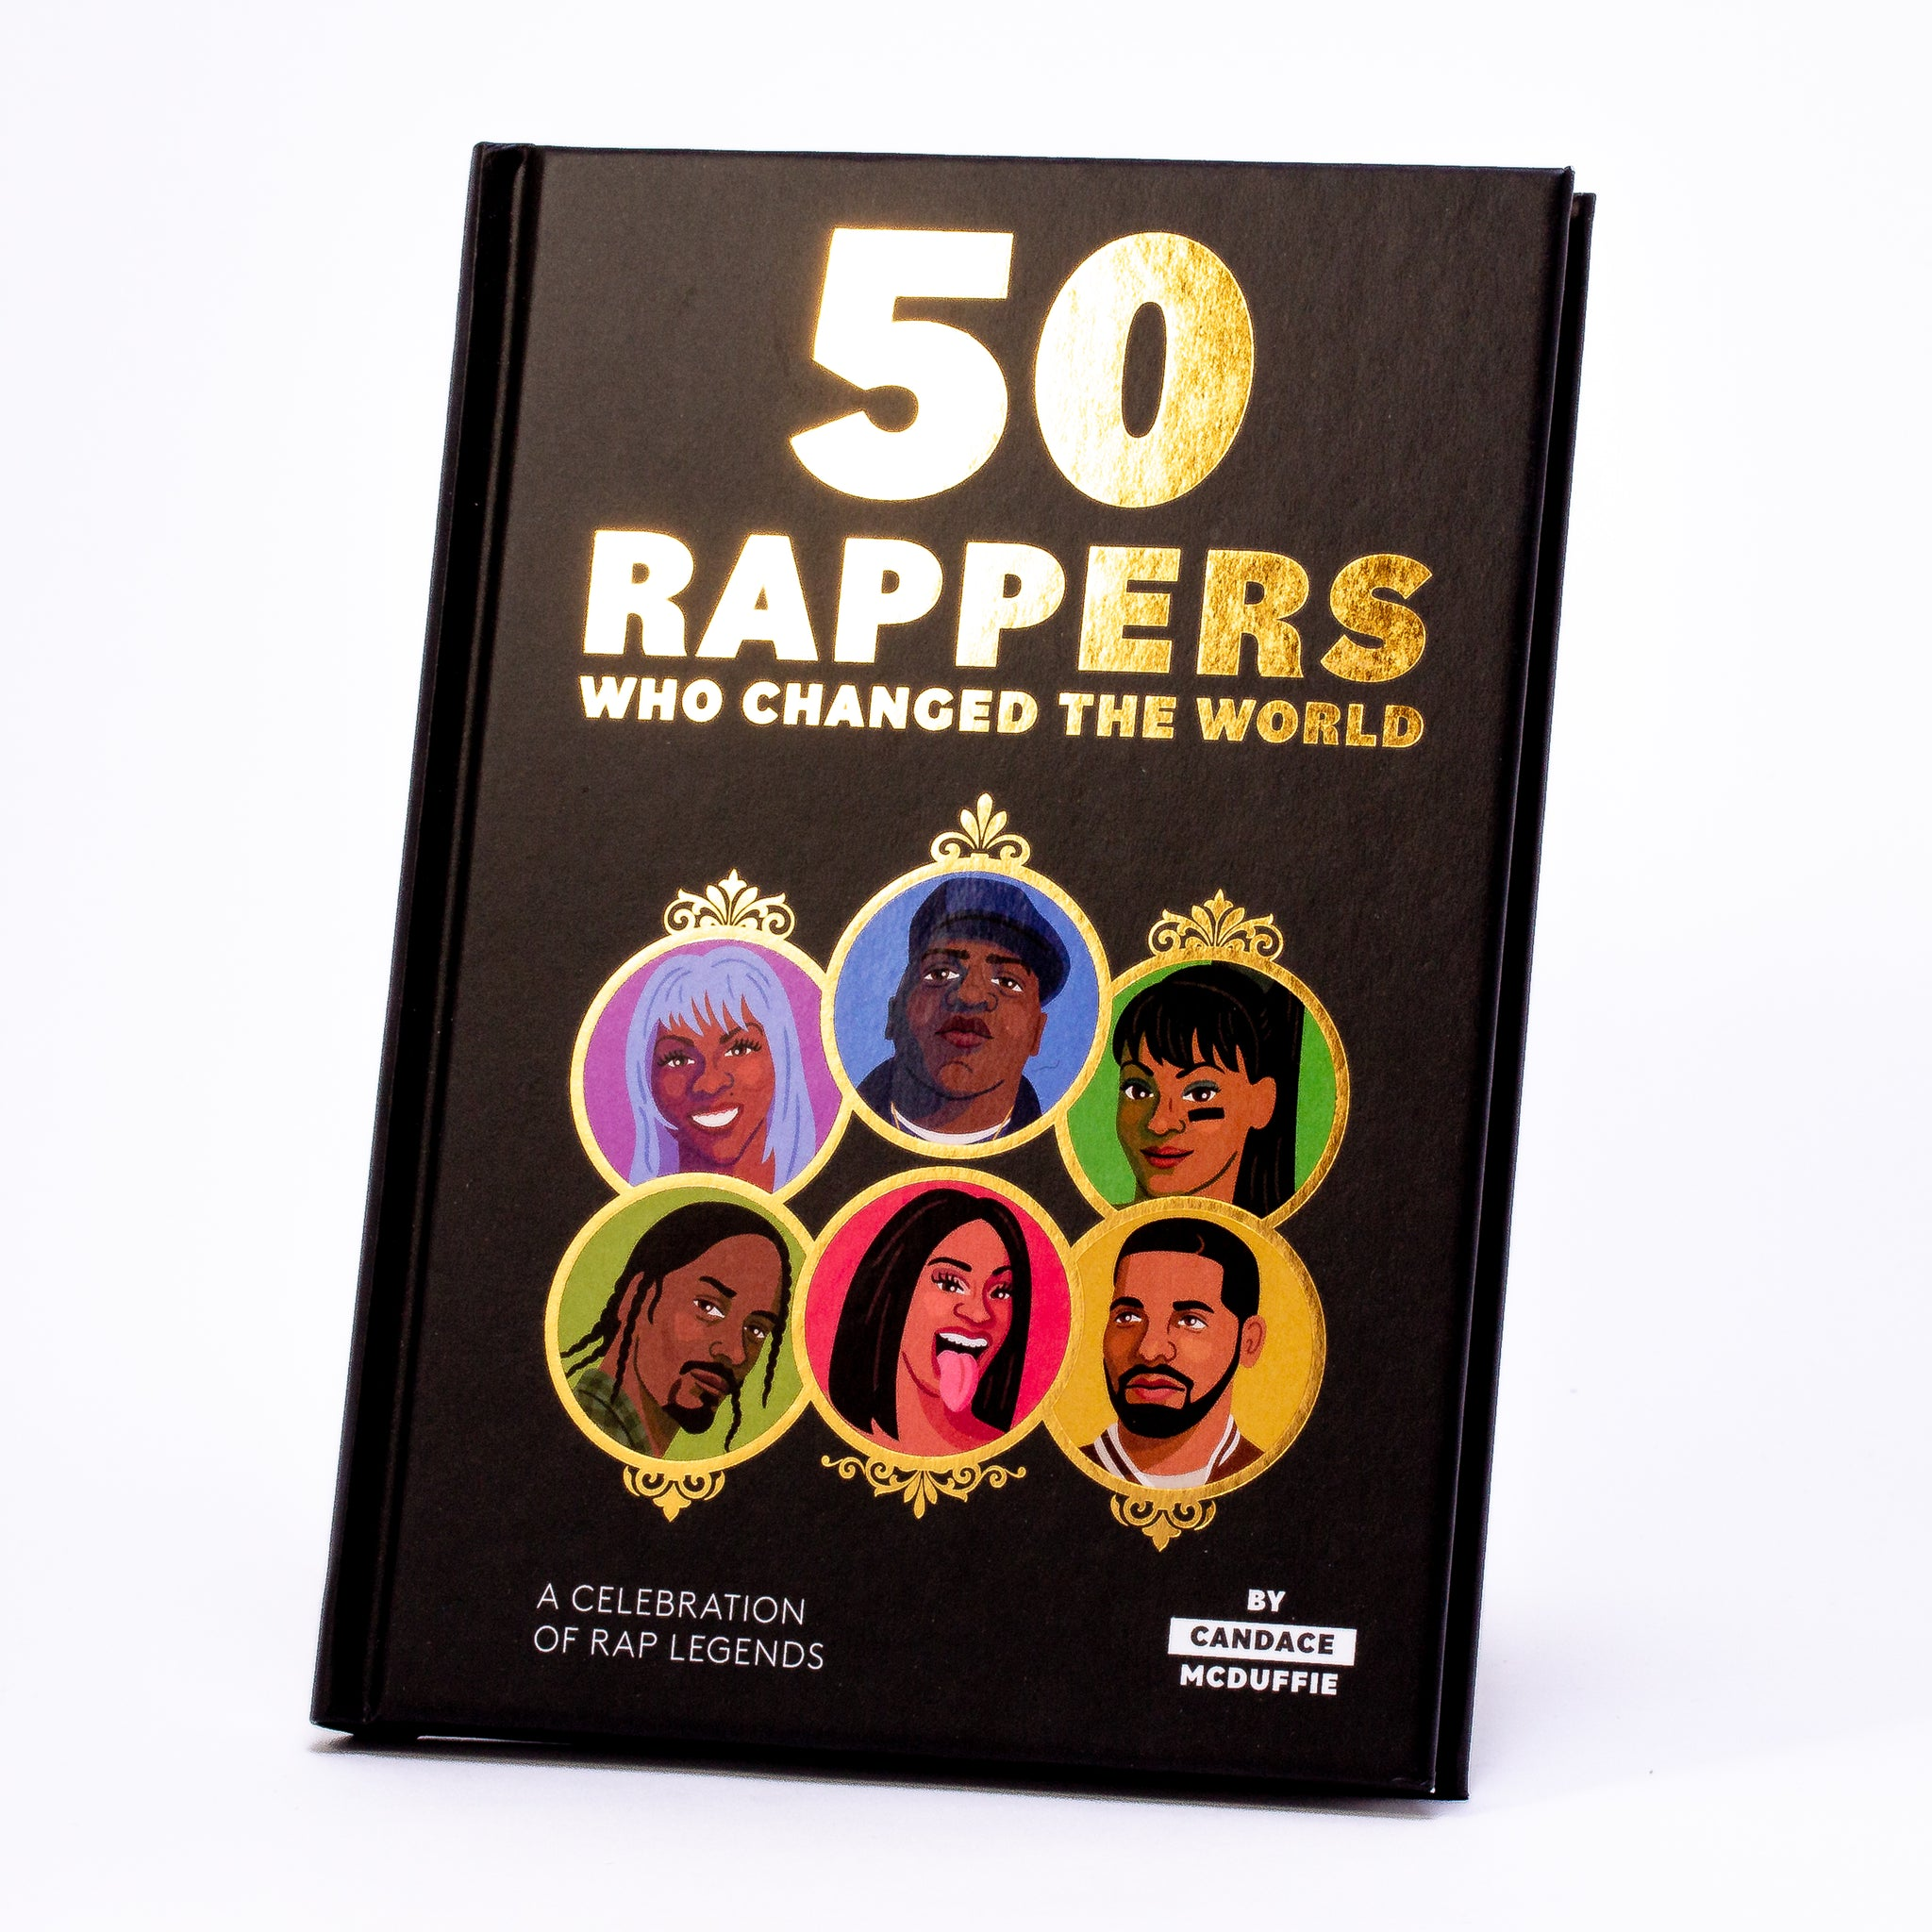 50 Rappers Who Changed The World